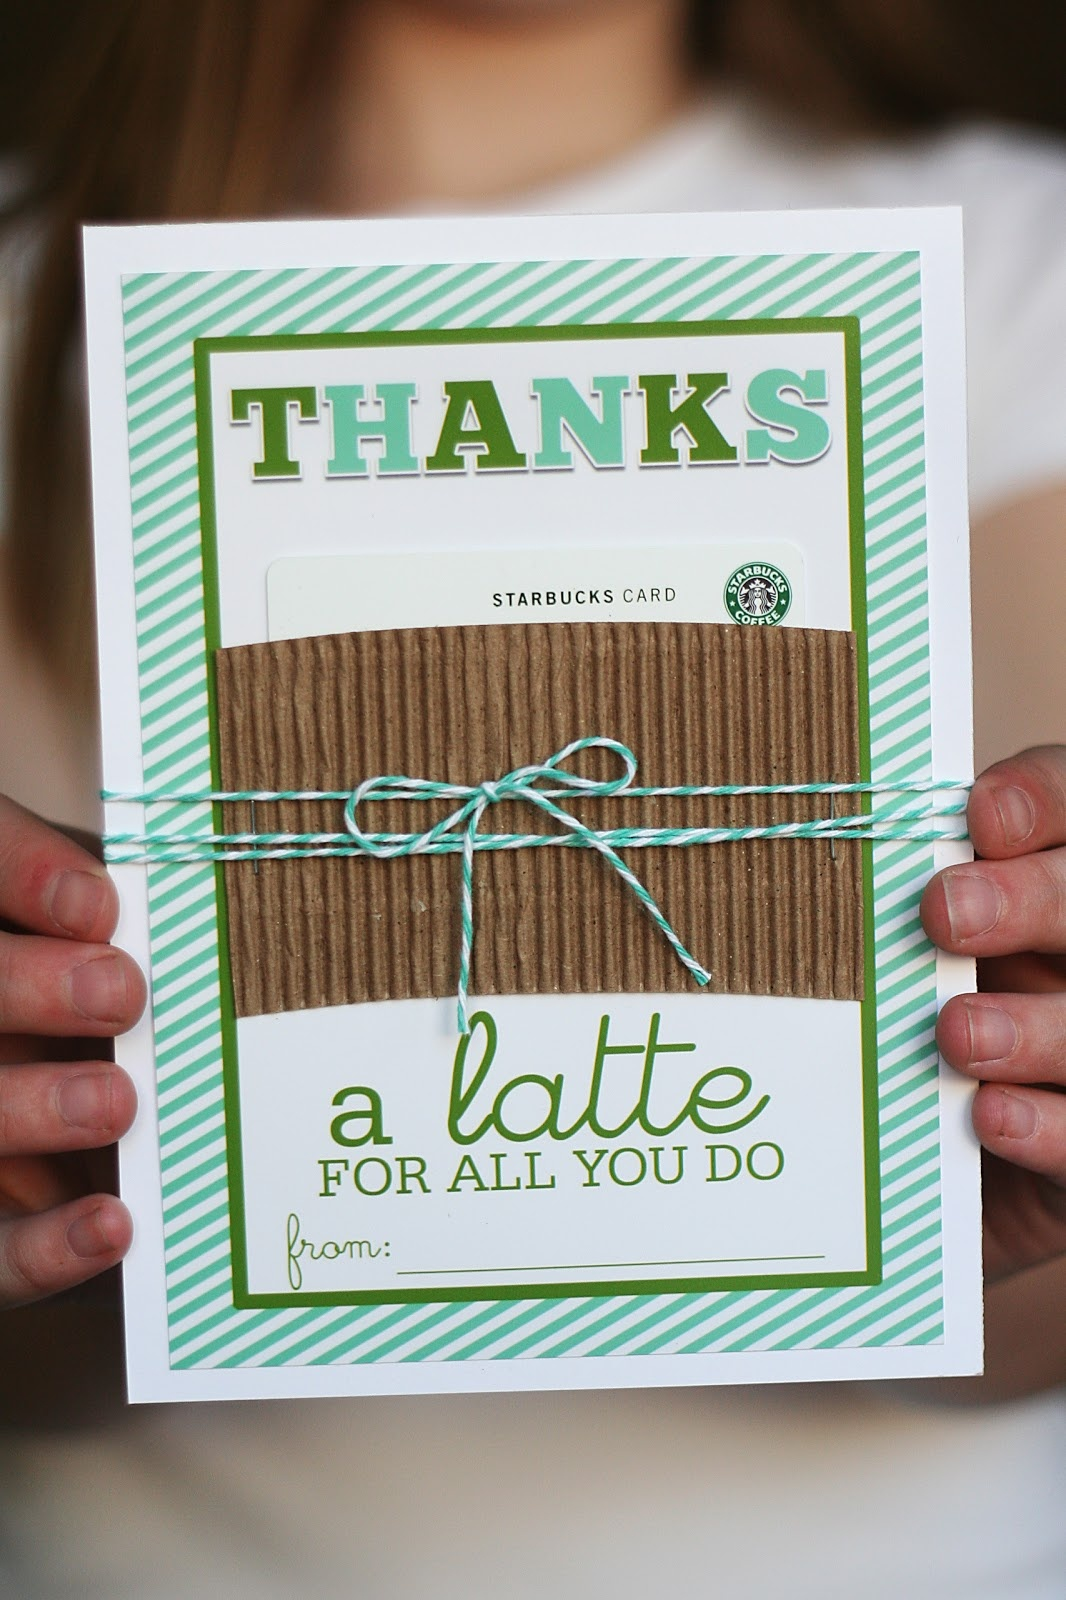 Thanks A Latte Card You Can Print For Free | Eighteen25 - Free Printable Volunteer Thank You Cards